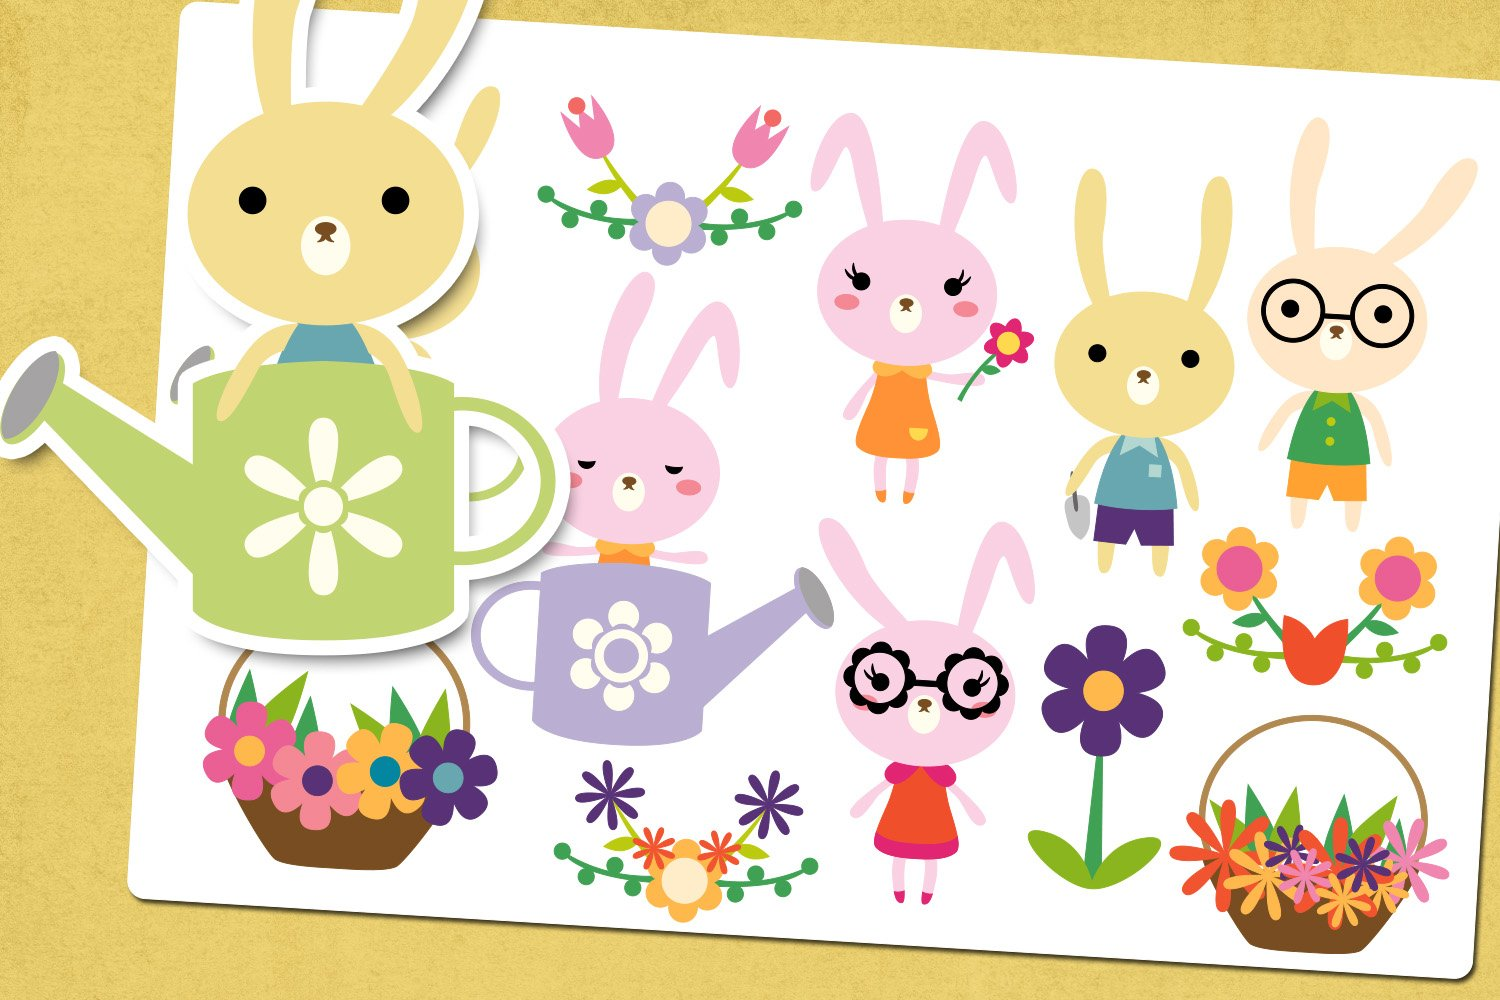 Spring bunny garden illustrations clip art example image 1